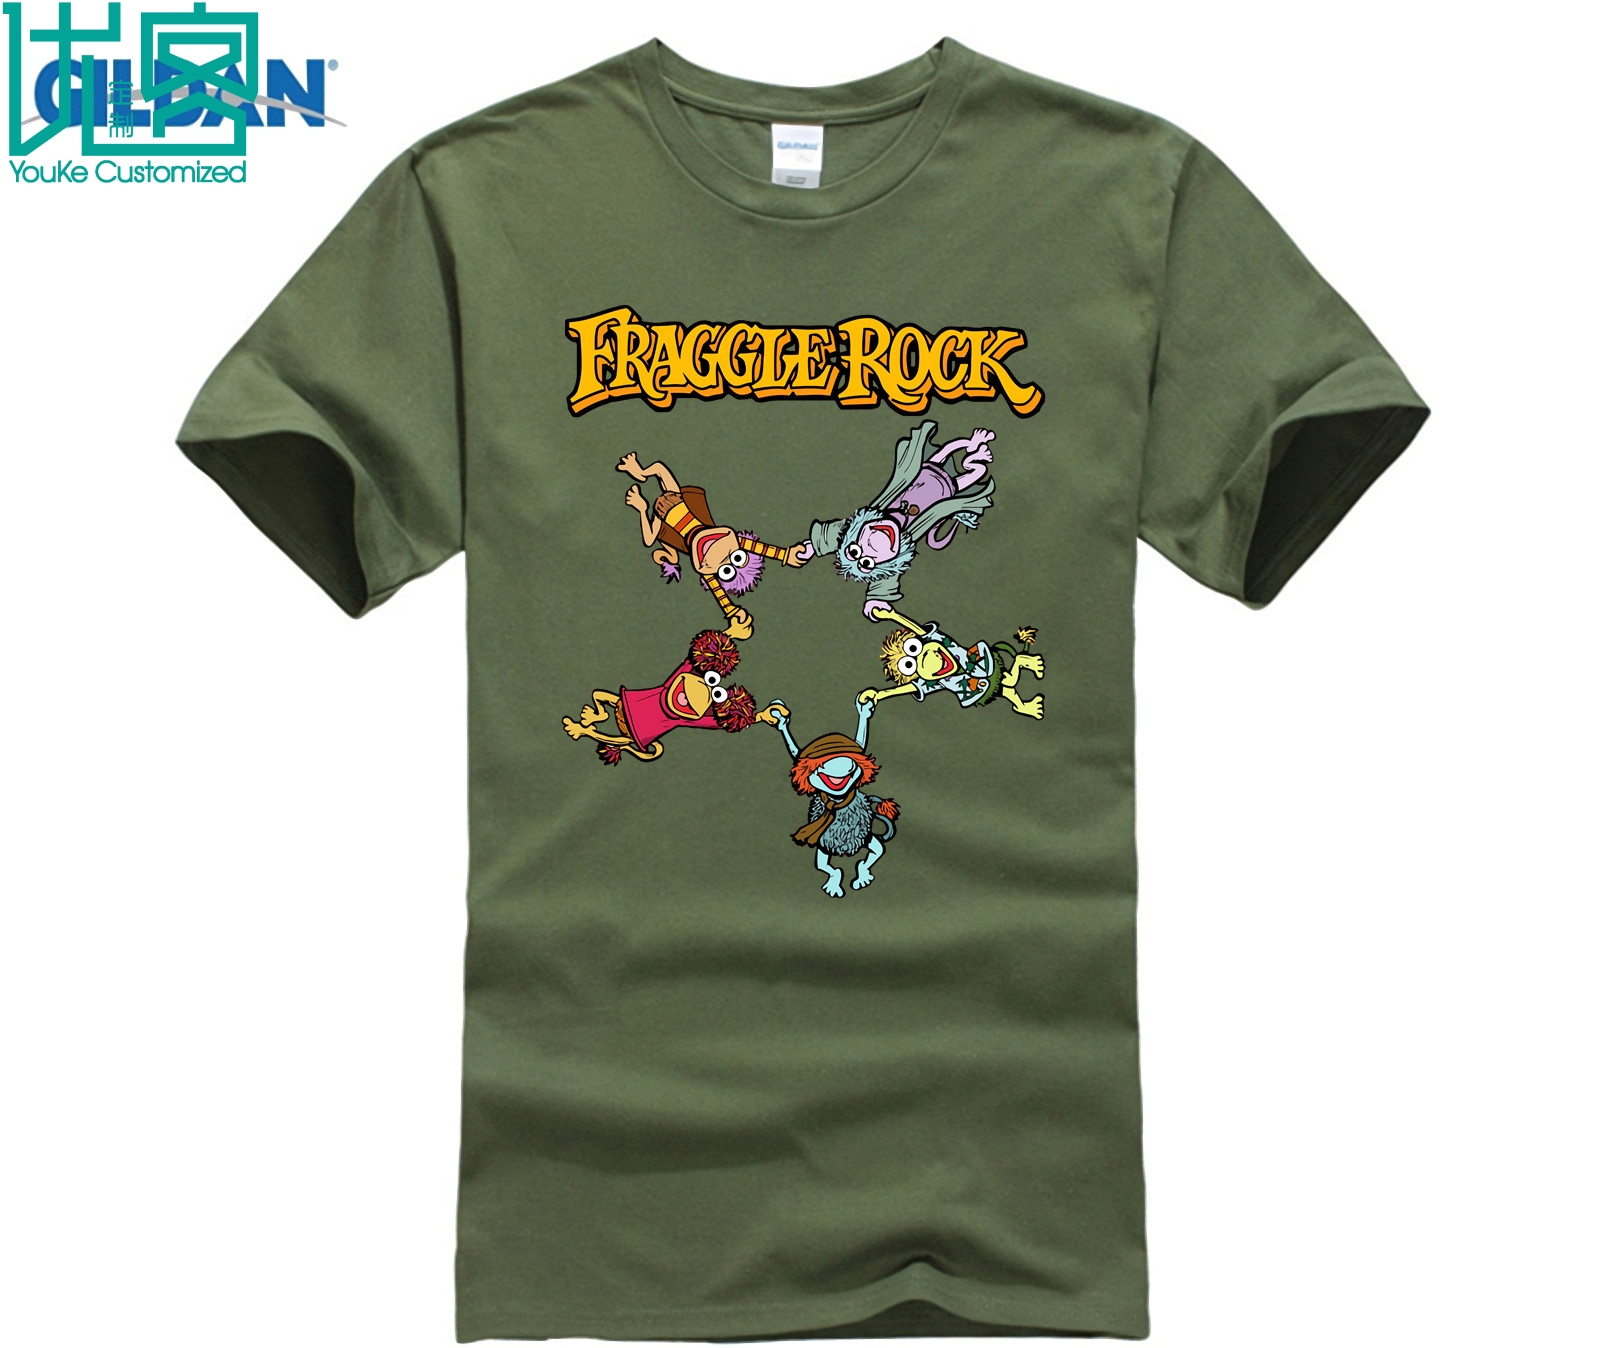 Fraggle Rock T-Shirt